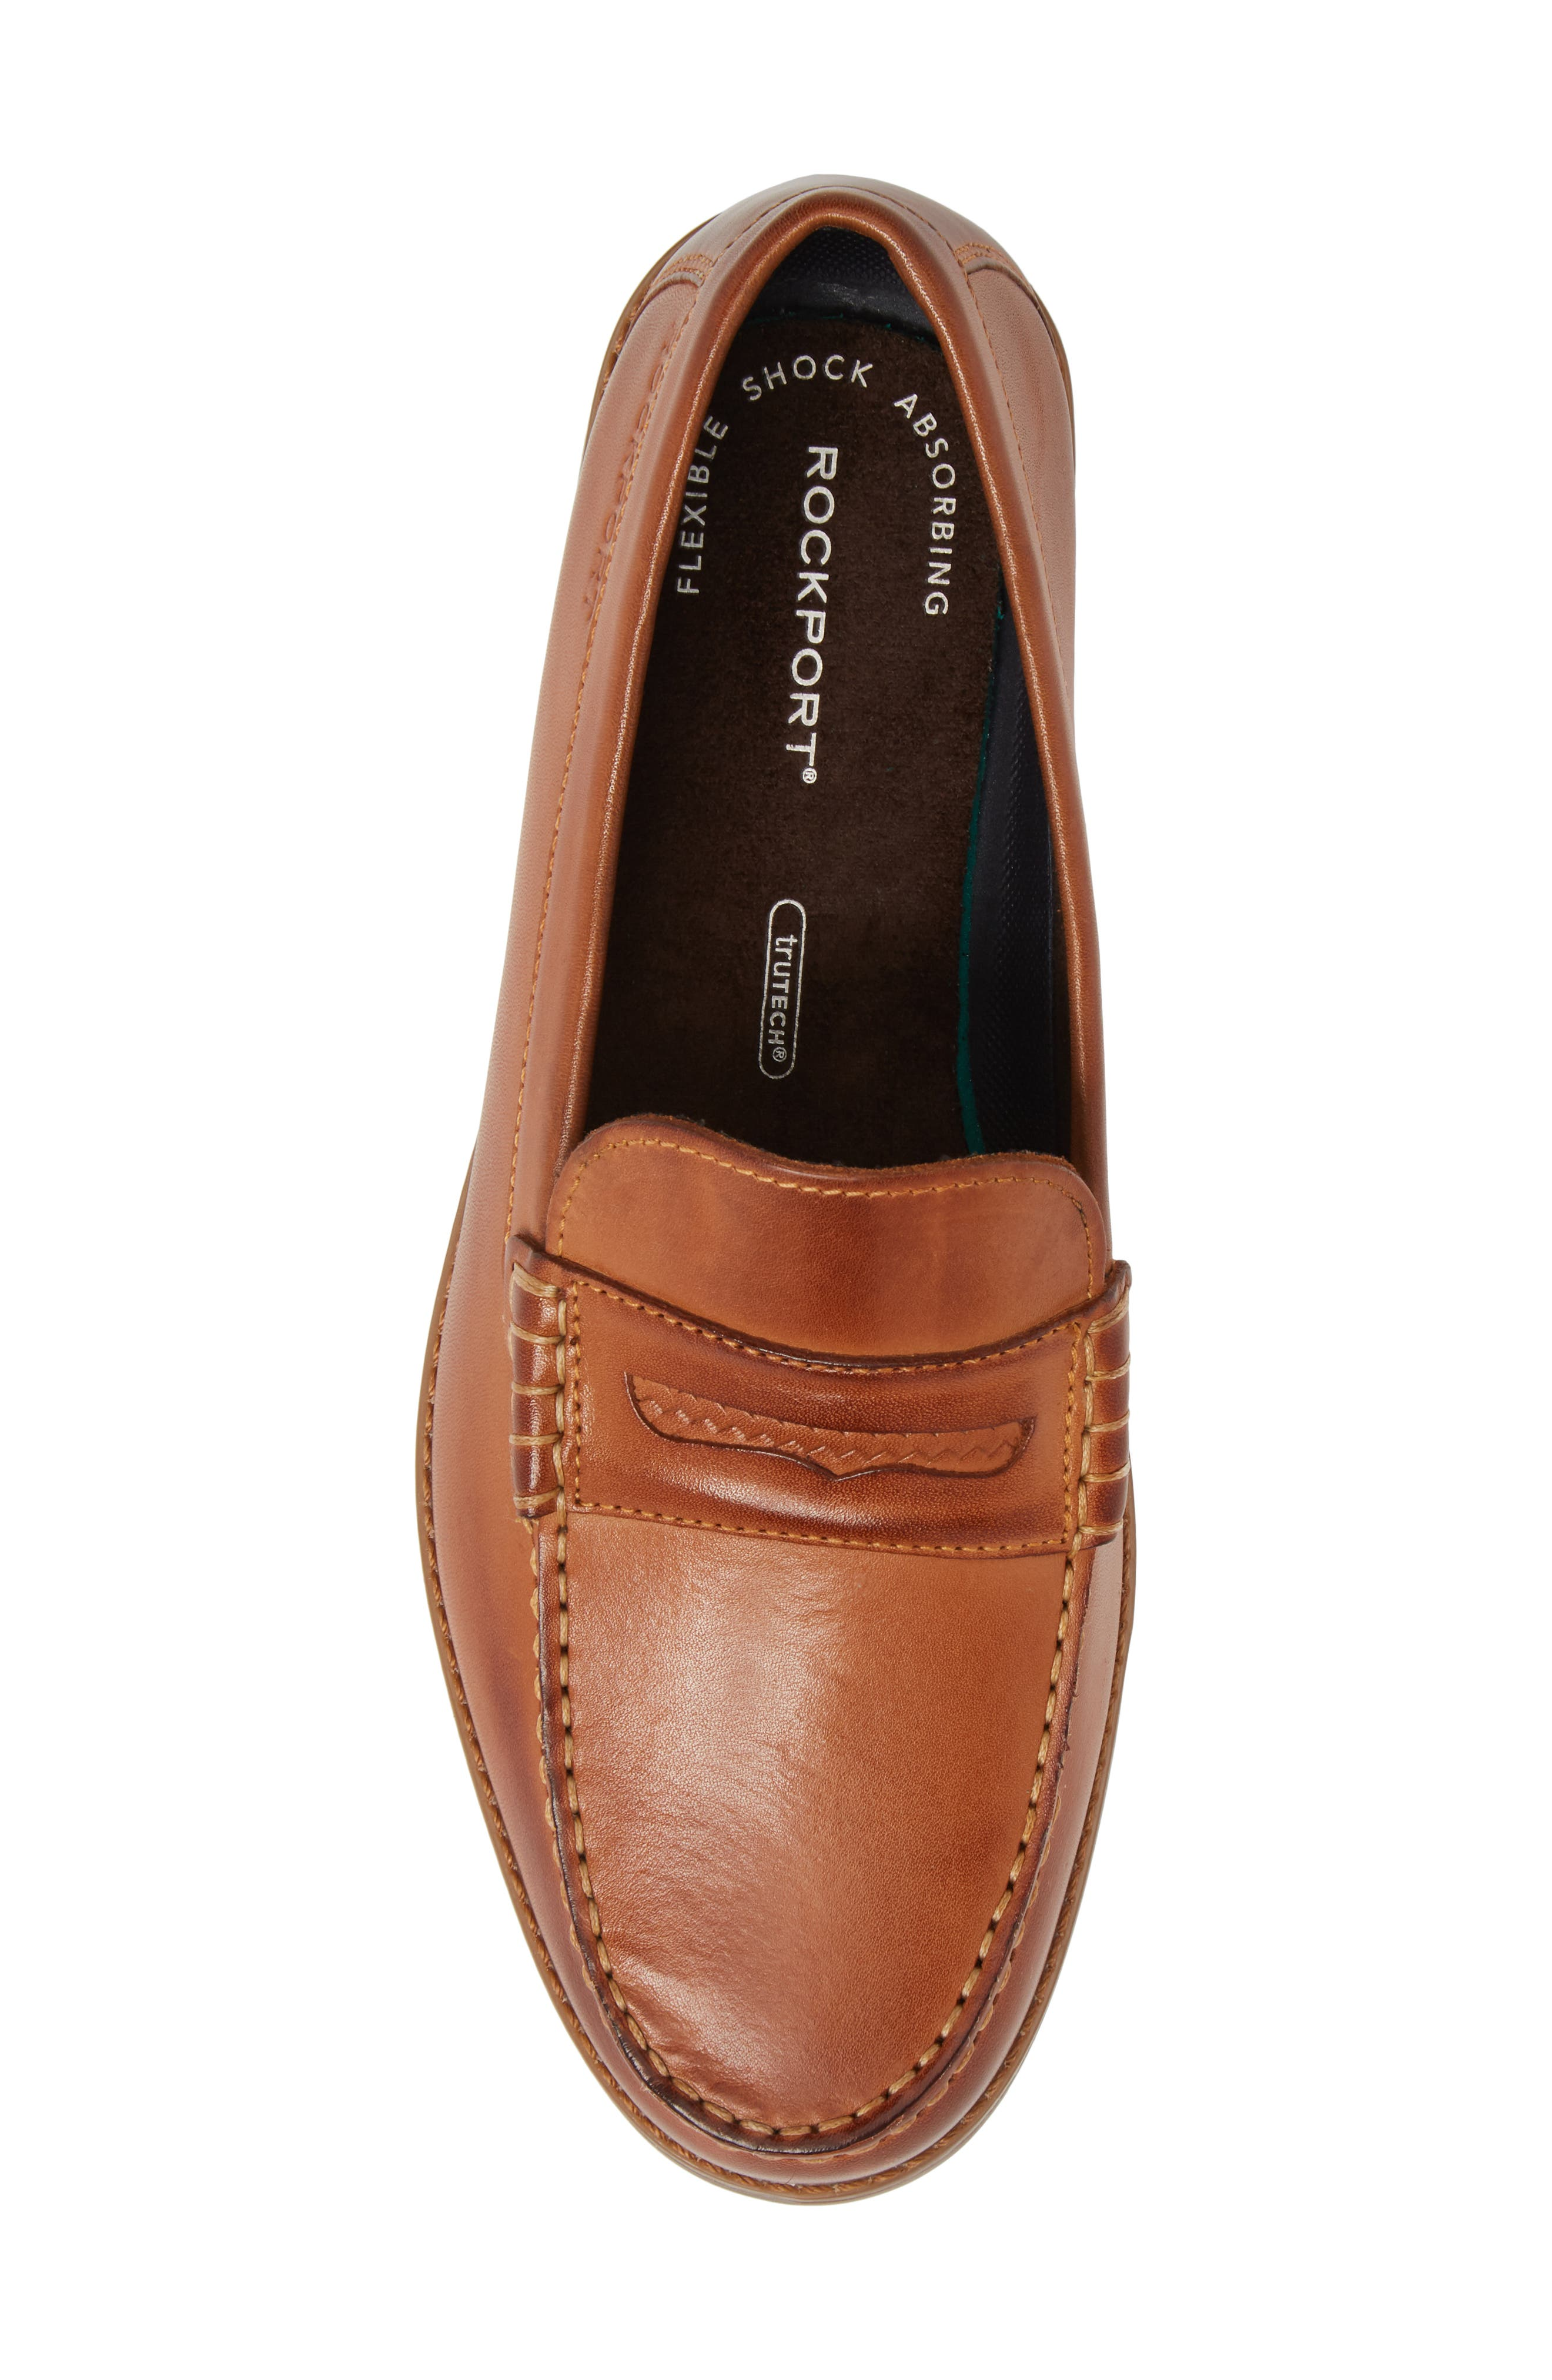 Cayleb Moc Toe Penny Loafer,                             Alternate thumbnail 5, color,                             Cognac Leather